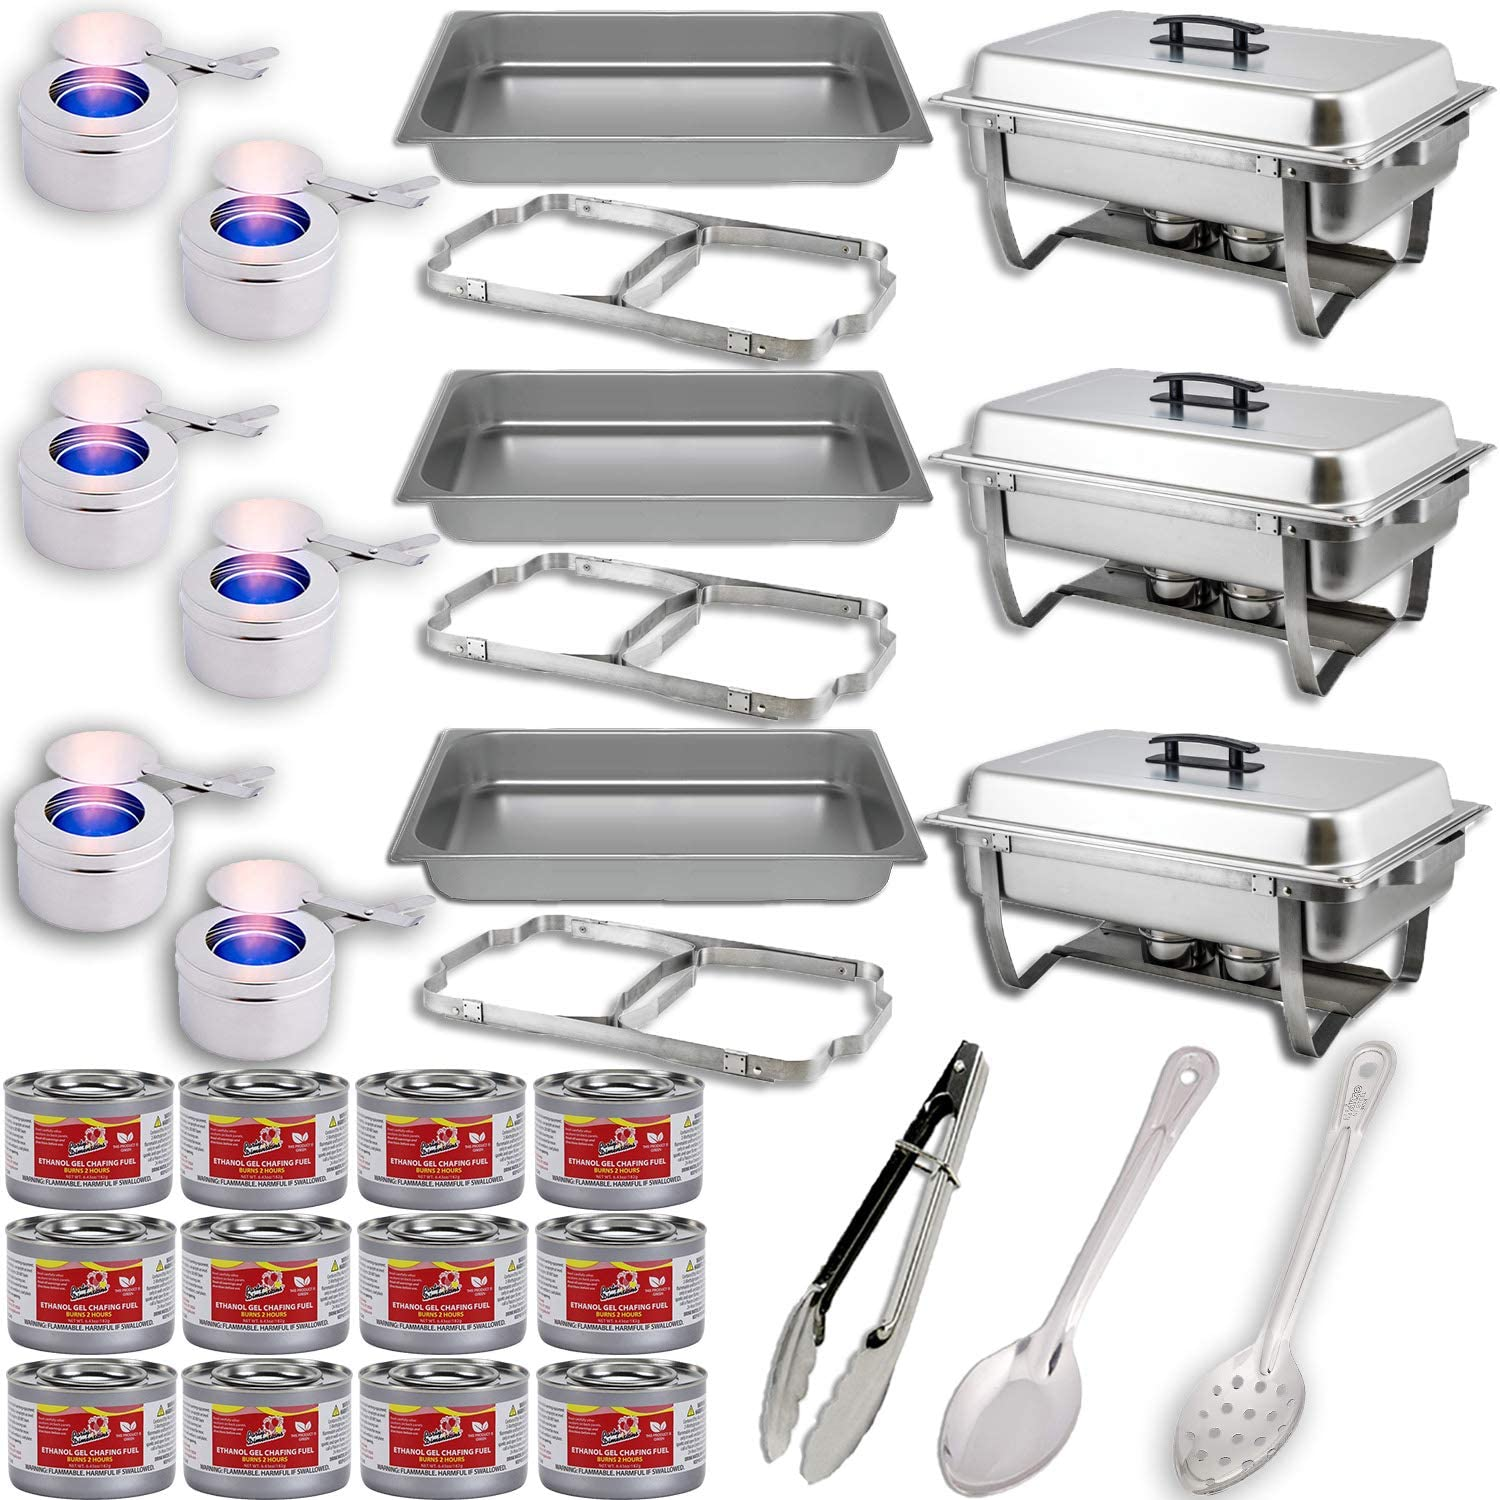 """Chafing Dish Buffet Set w/Fuel — Folding Frame + Water Pans + Food Pans 8qt + Lids + 6 Fuel Holders + 12 Fuel Cans + Serving Utensils (15"""" Perforated spoon + 15"""